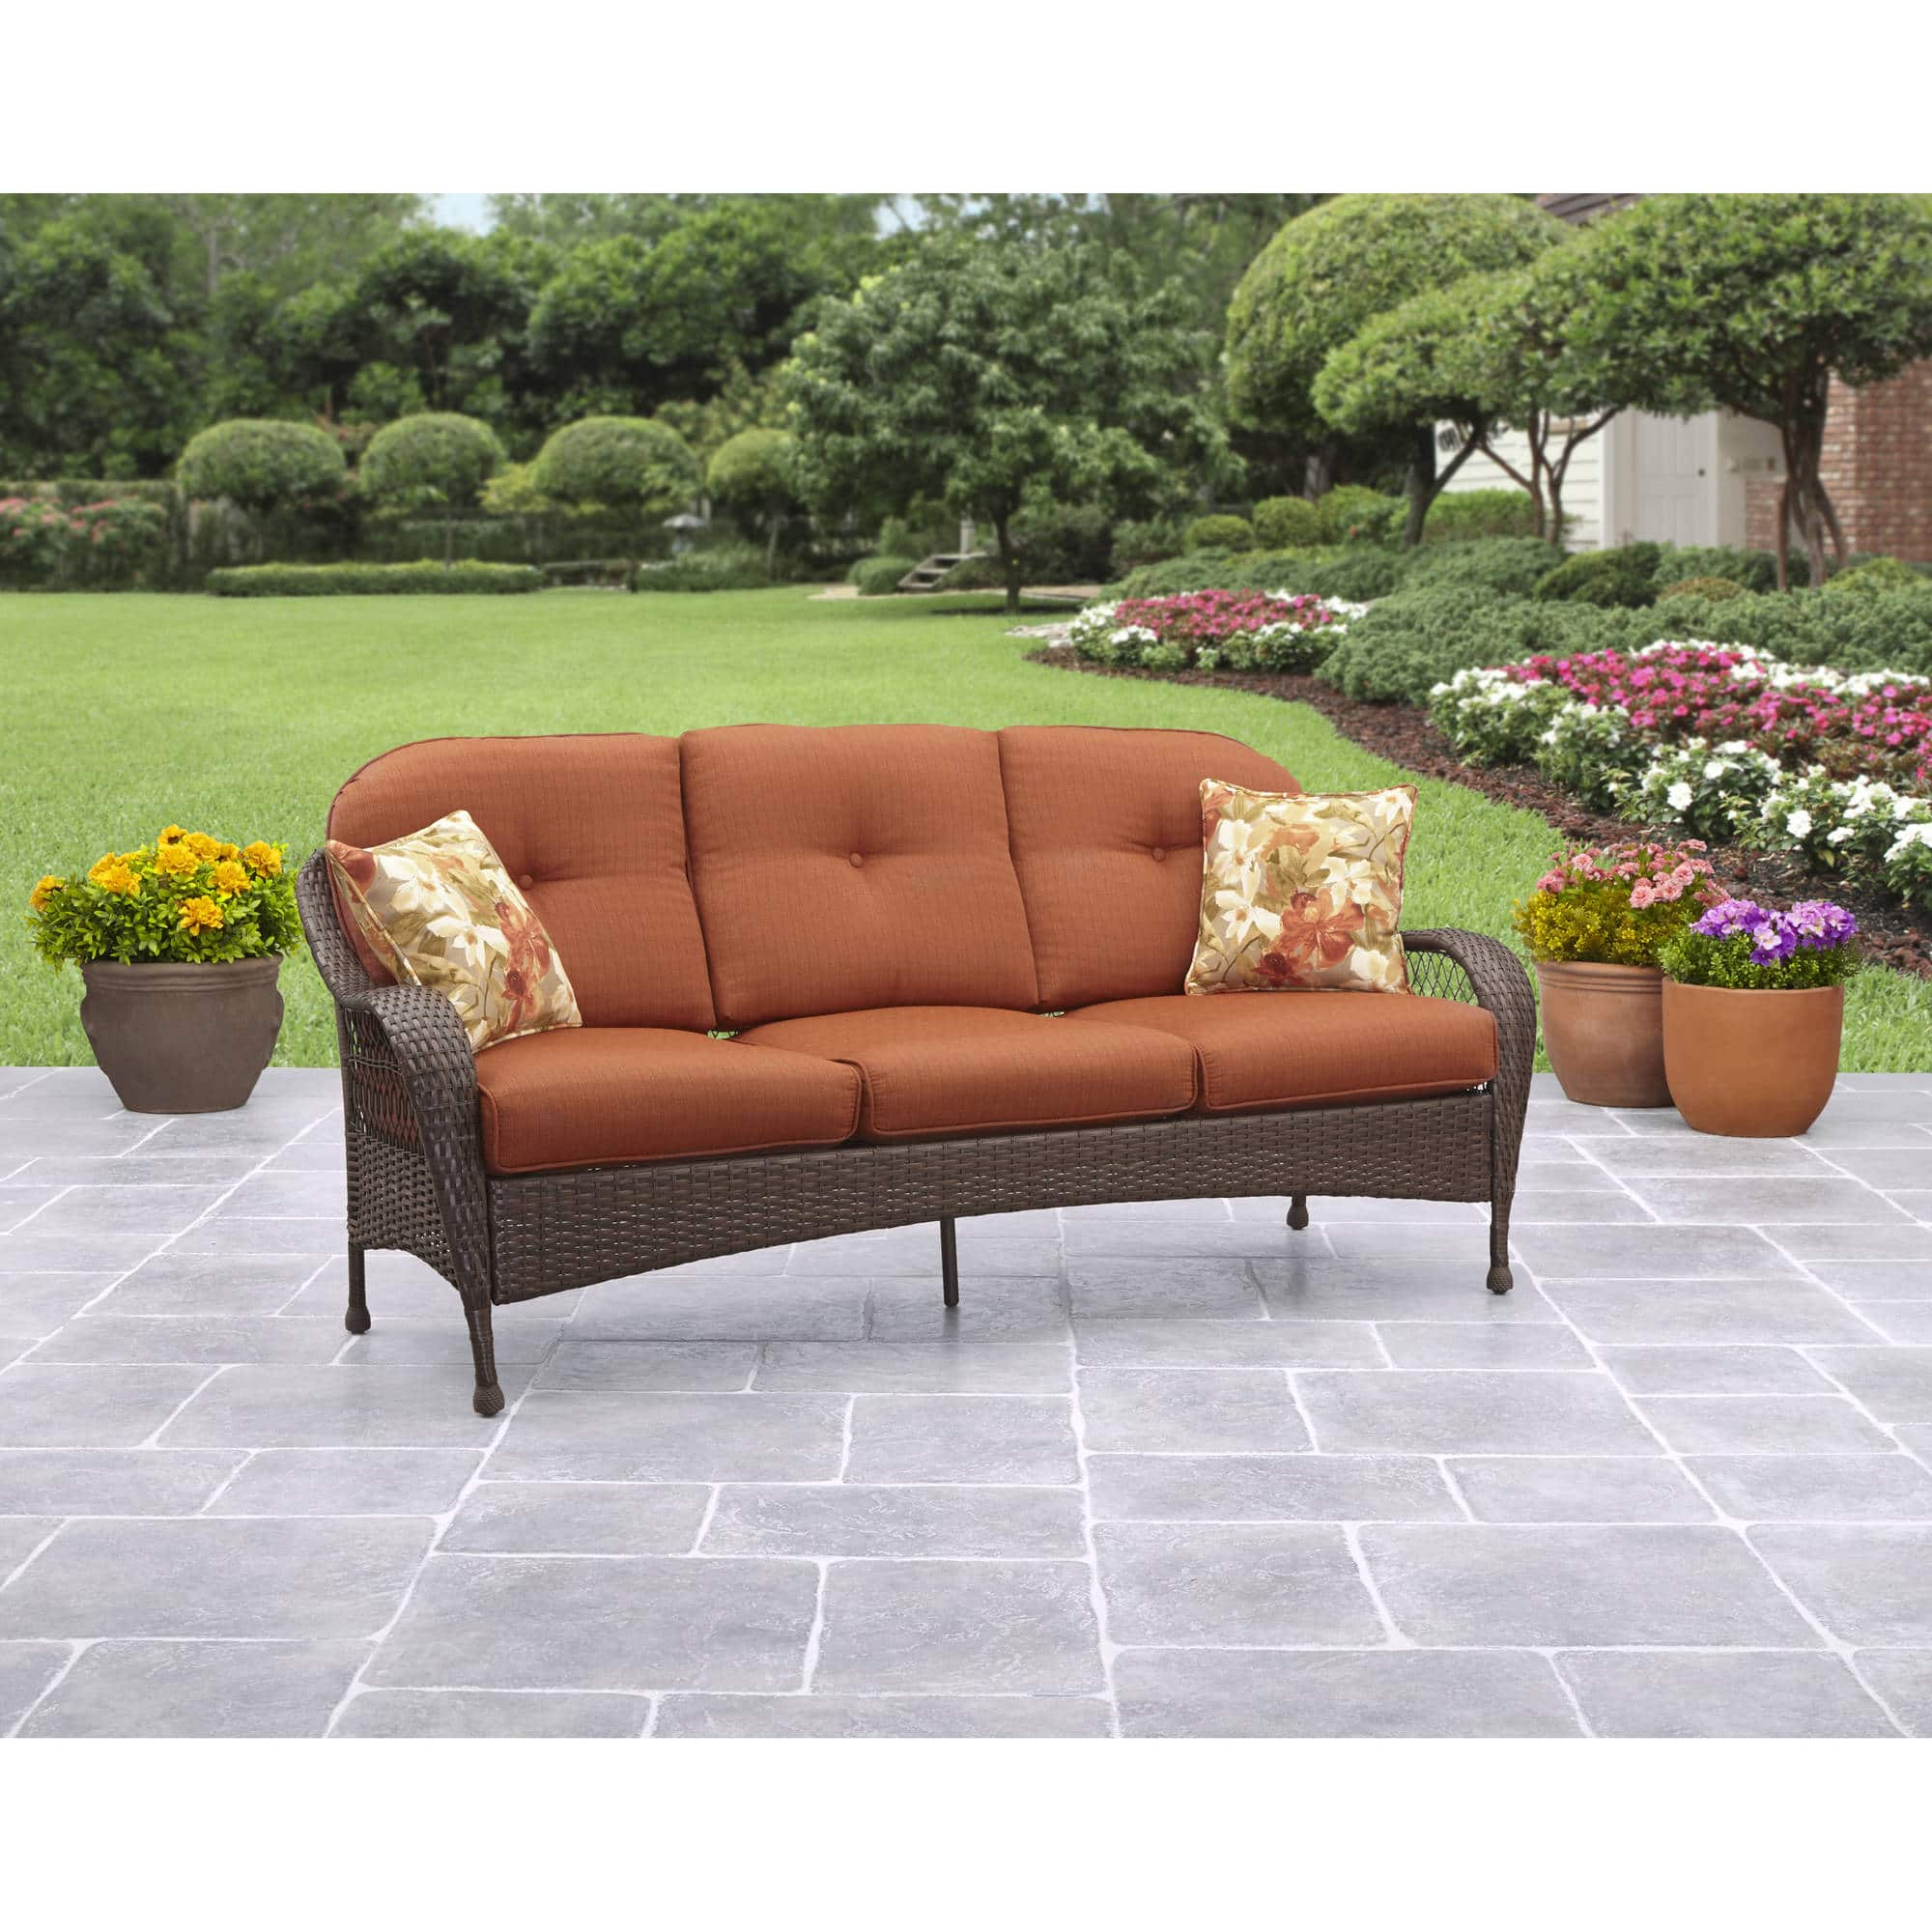 Better Homes And Gardens Azalea Ridge Outdoor Sofa Slickdeals Net